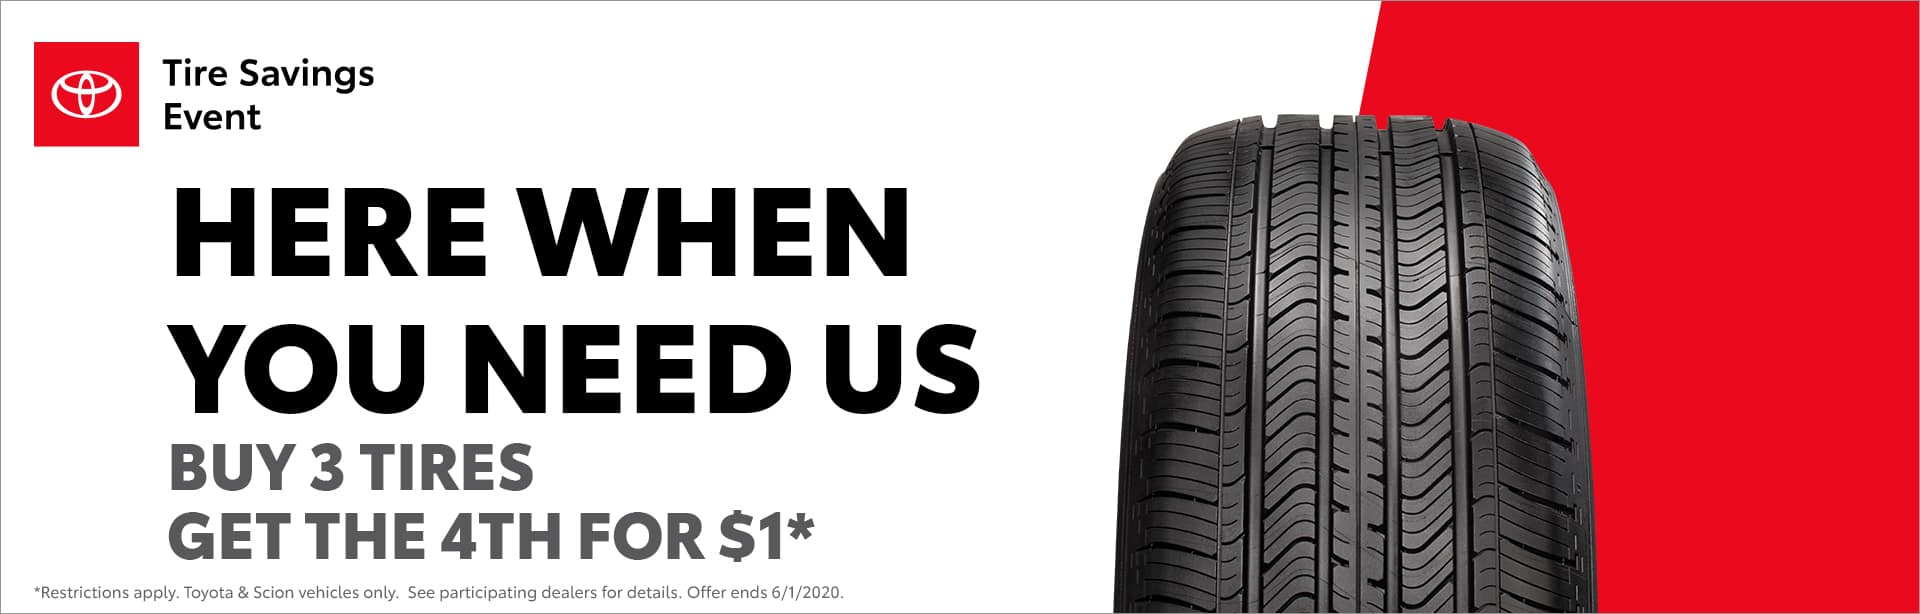 Buy 3 get 4th $1 tires